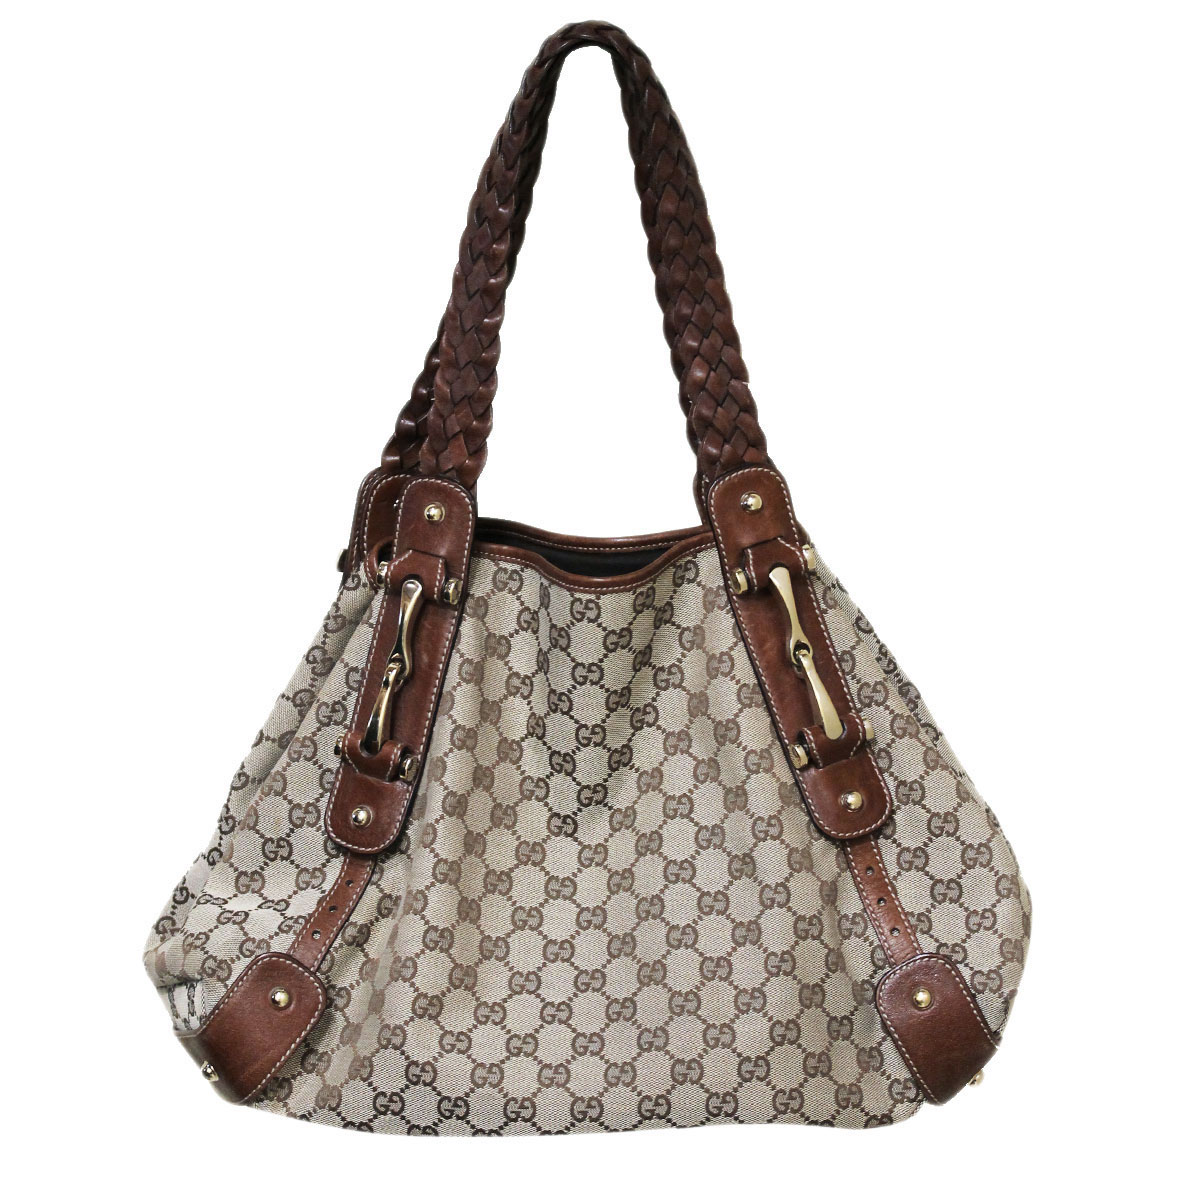 Sell Gucci Handbags